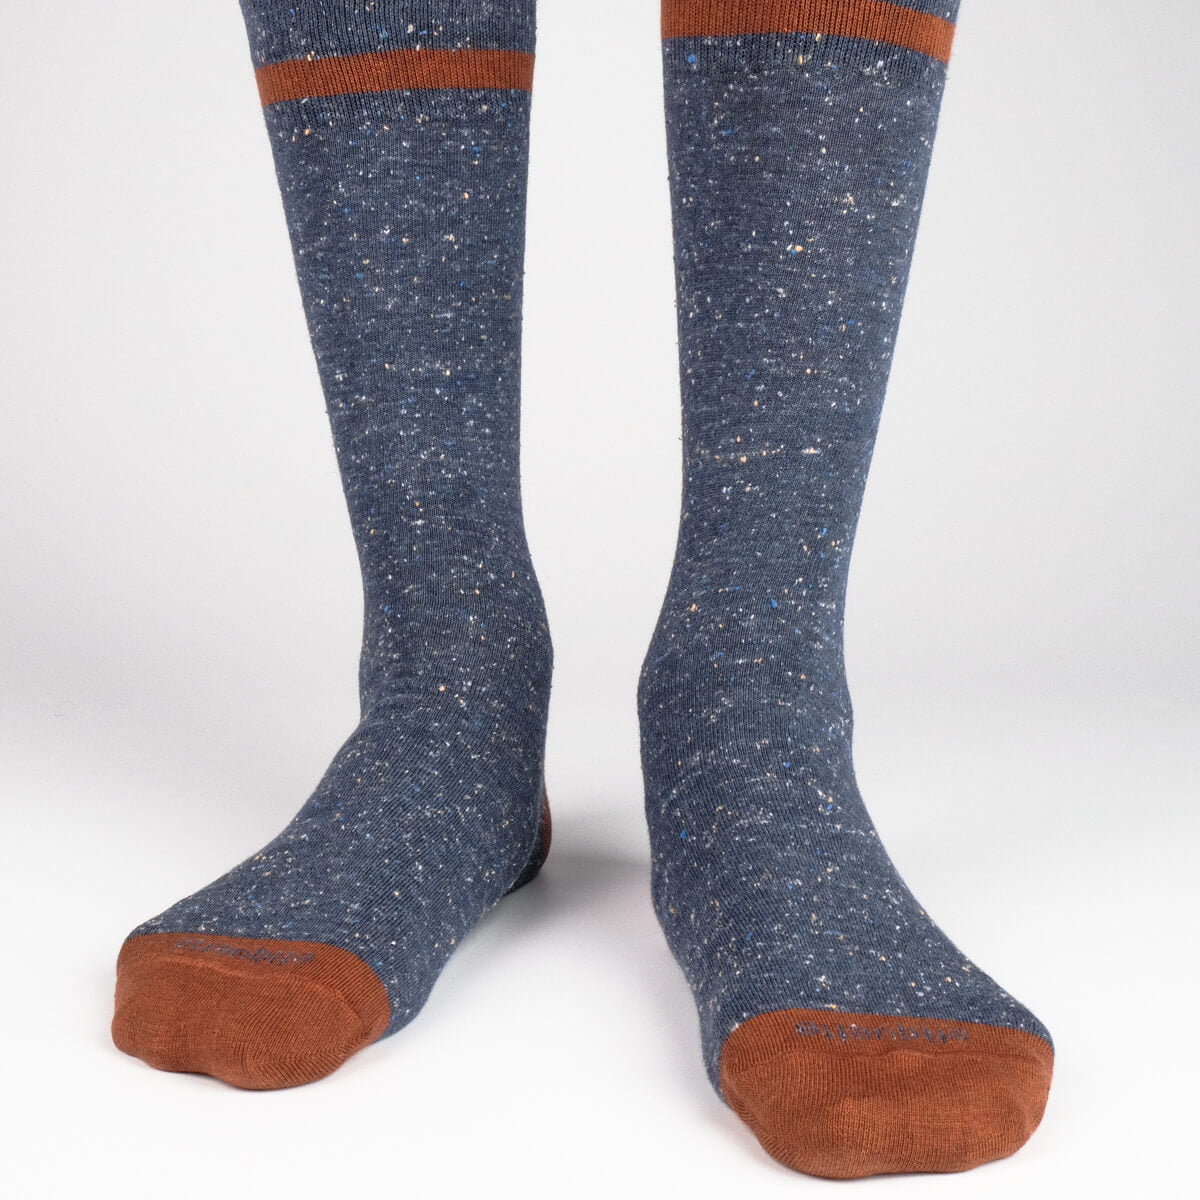 Mens Socks - Smart Nope Men's Socks - Dark Blue⎪Etiquette Clothiers